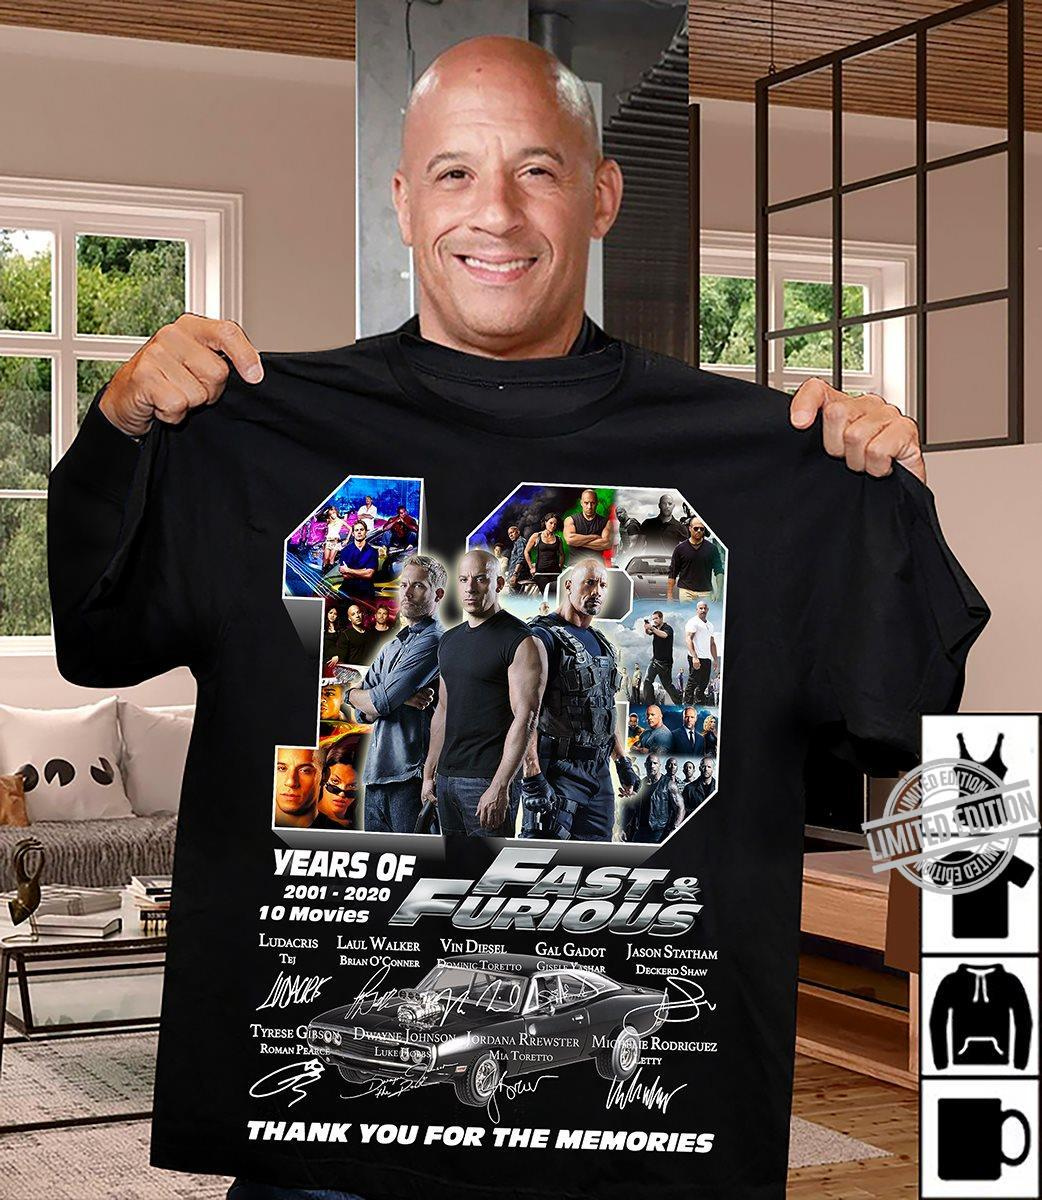 19 Years Of 2001-2020 10 Movies Fast & Furious Thanks You For The Memories Shirt